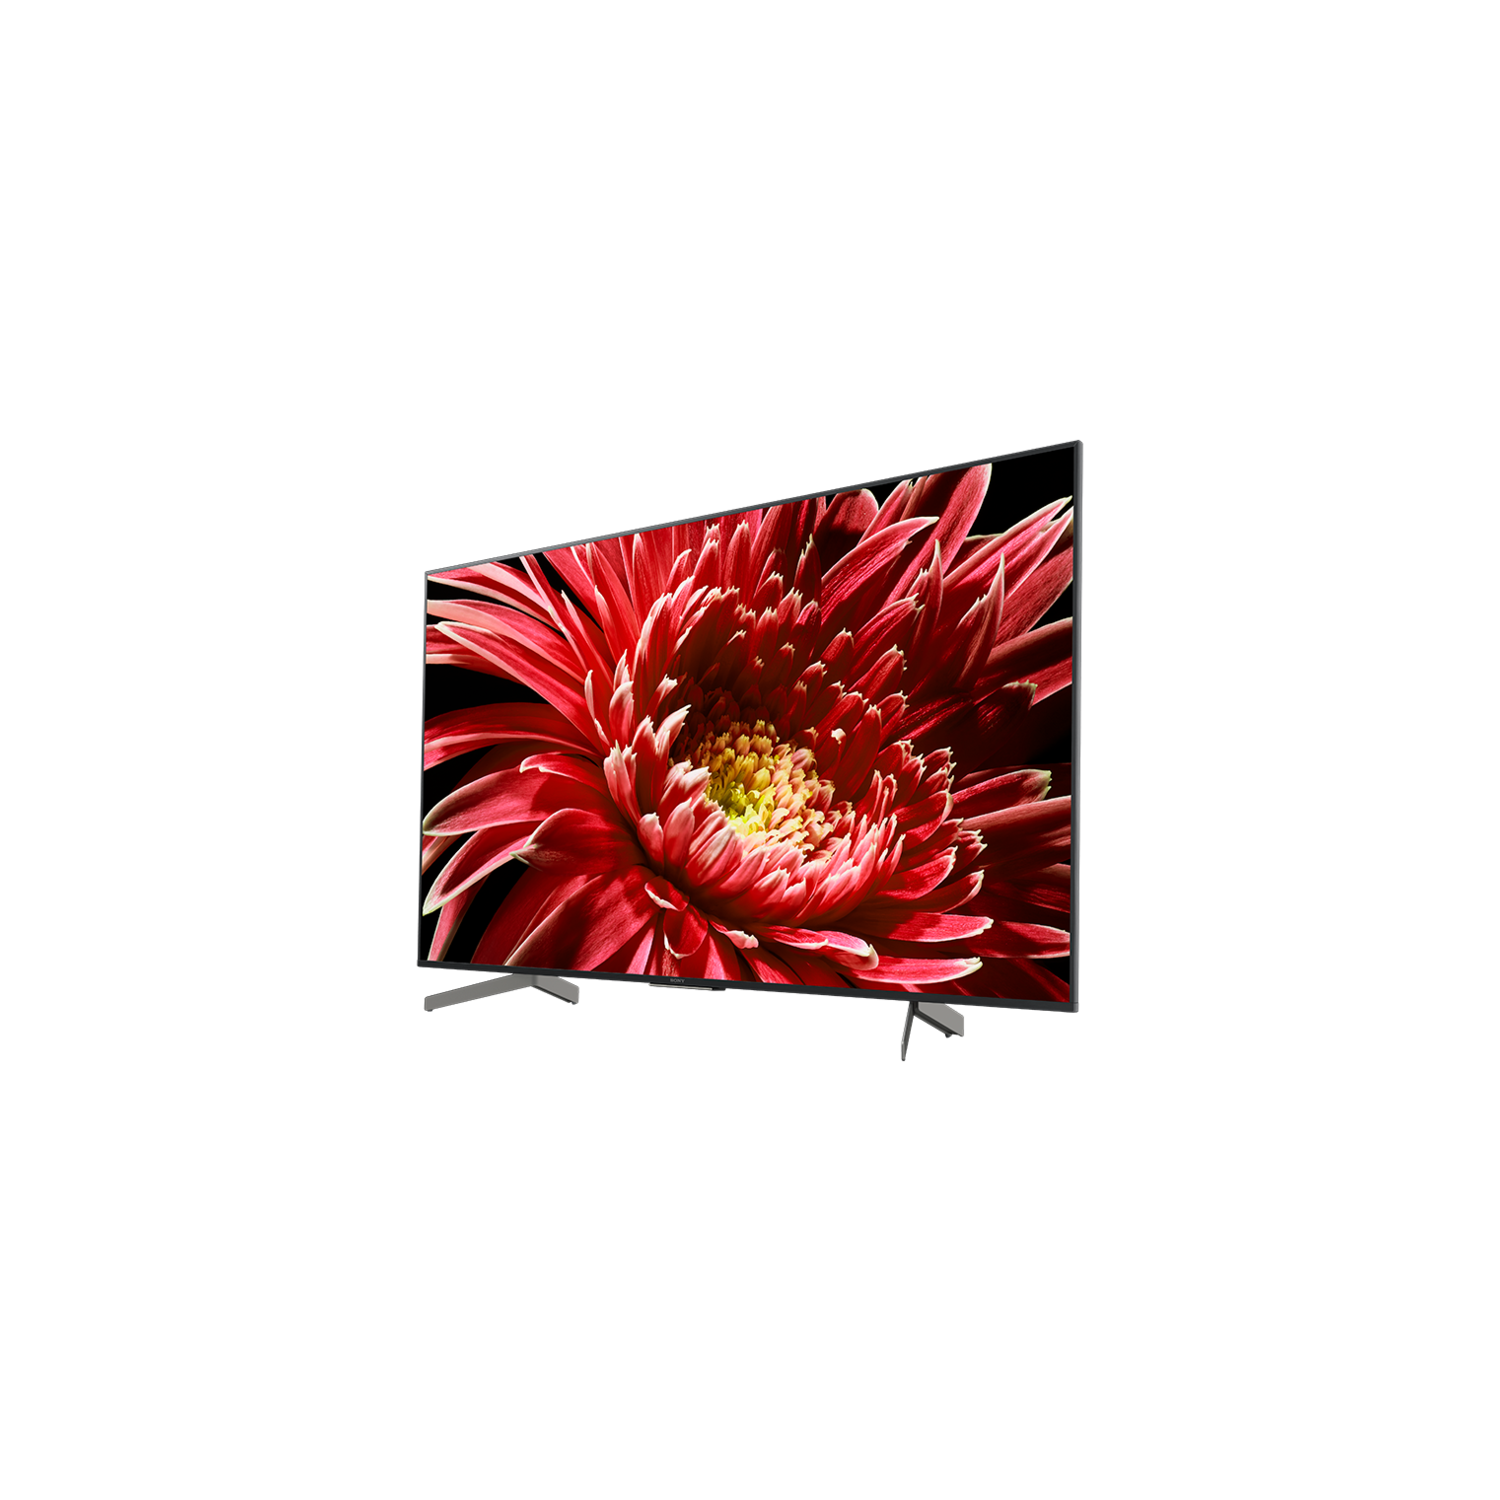 """55"""" X85G LED 4K Ultra HD High Dynamic Range Smart Android TV, , product-image"""